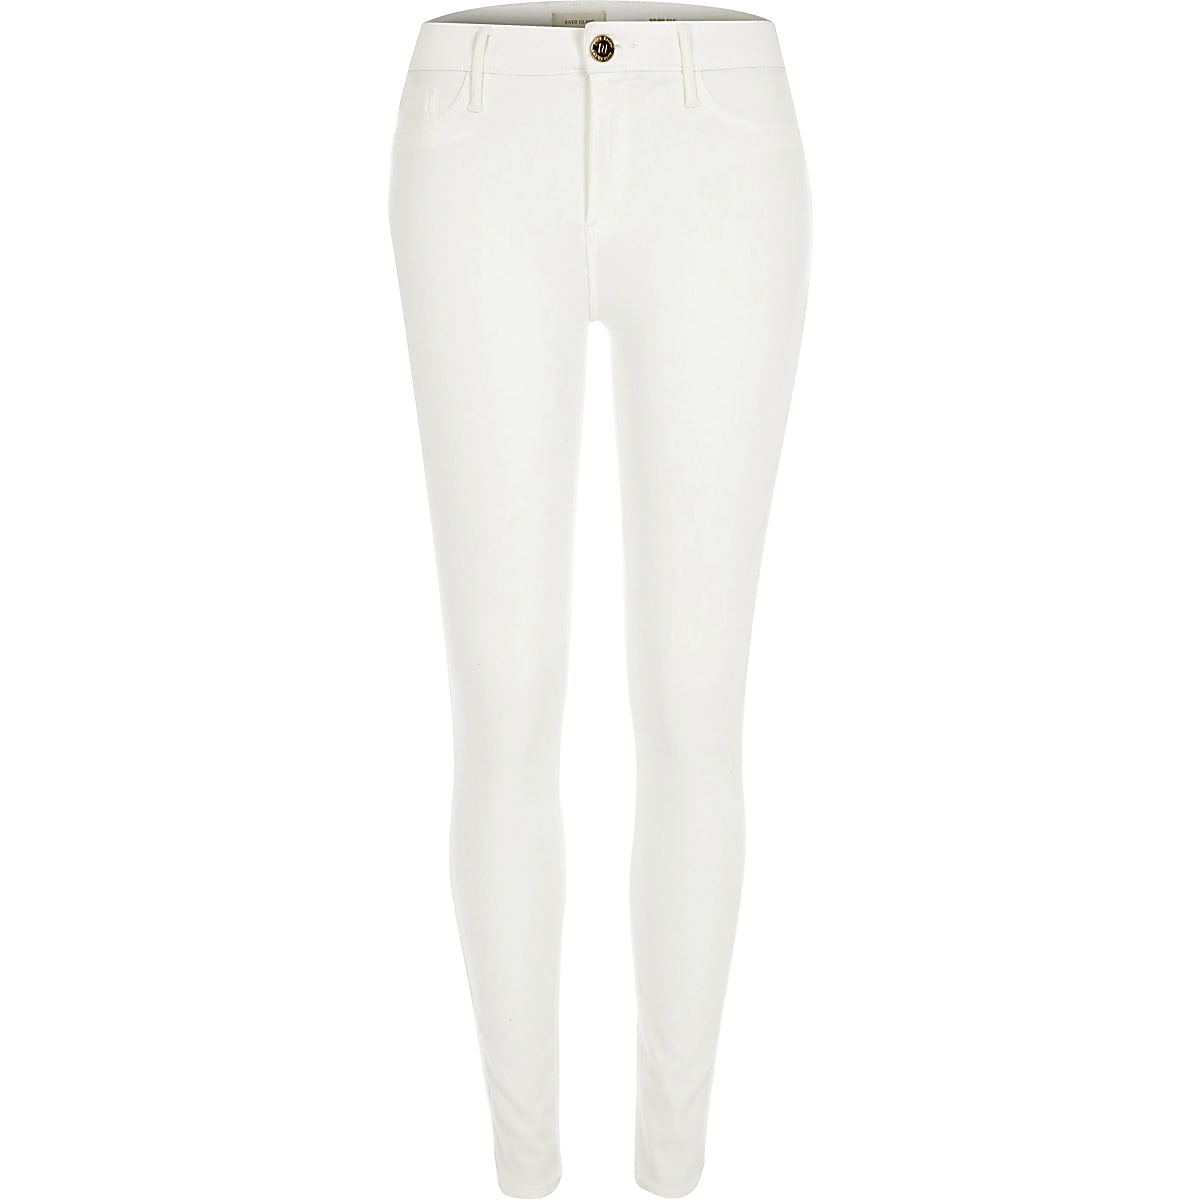 White reform Molly jeggings